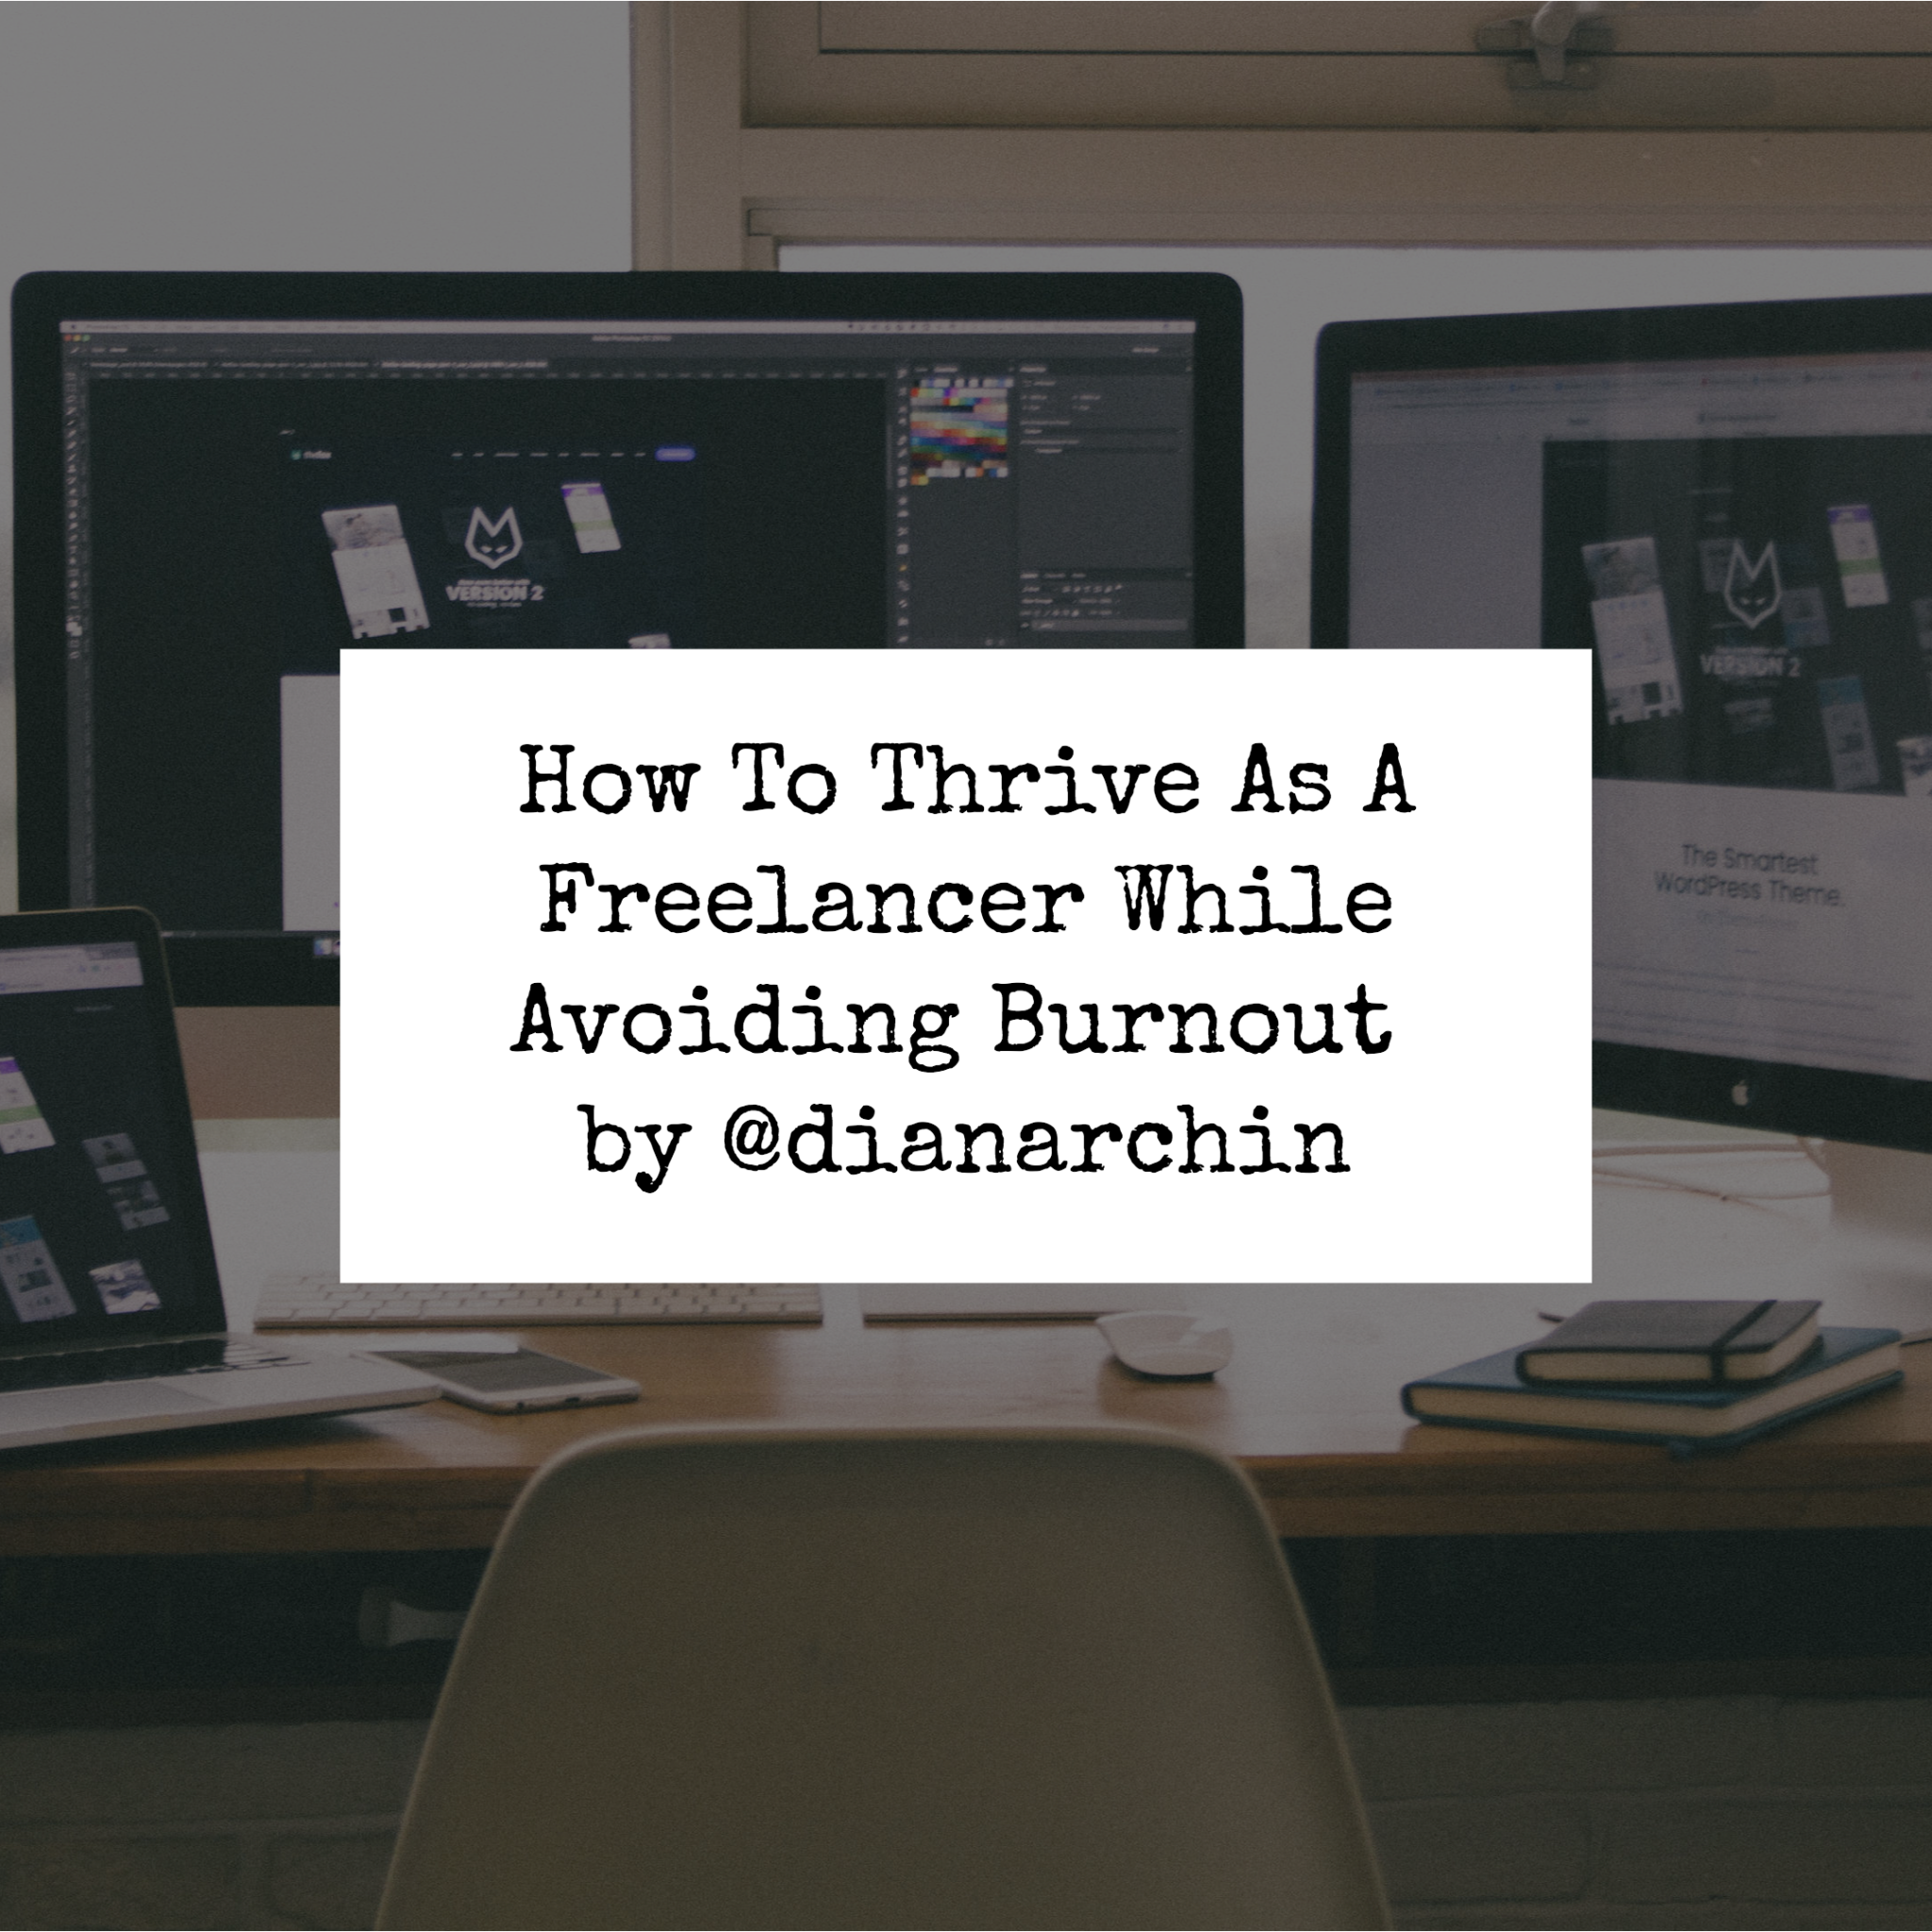 How To Thrive As A Freelancer While Avoiding Burnout